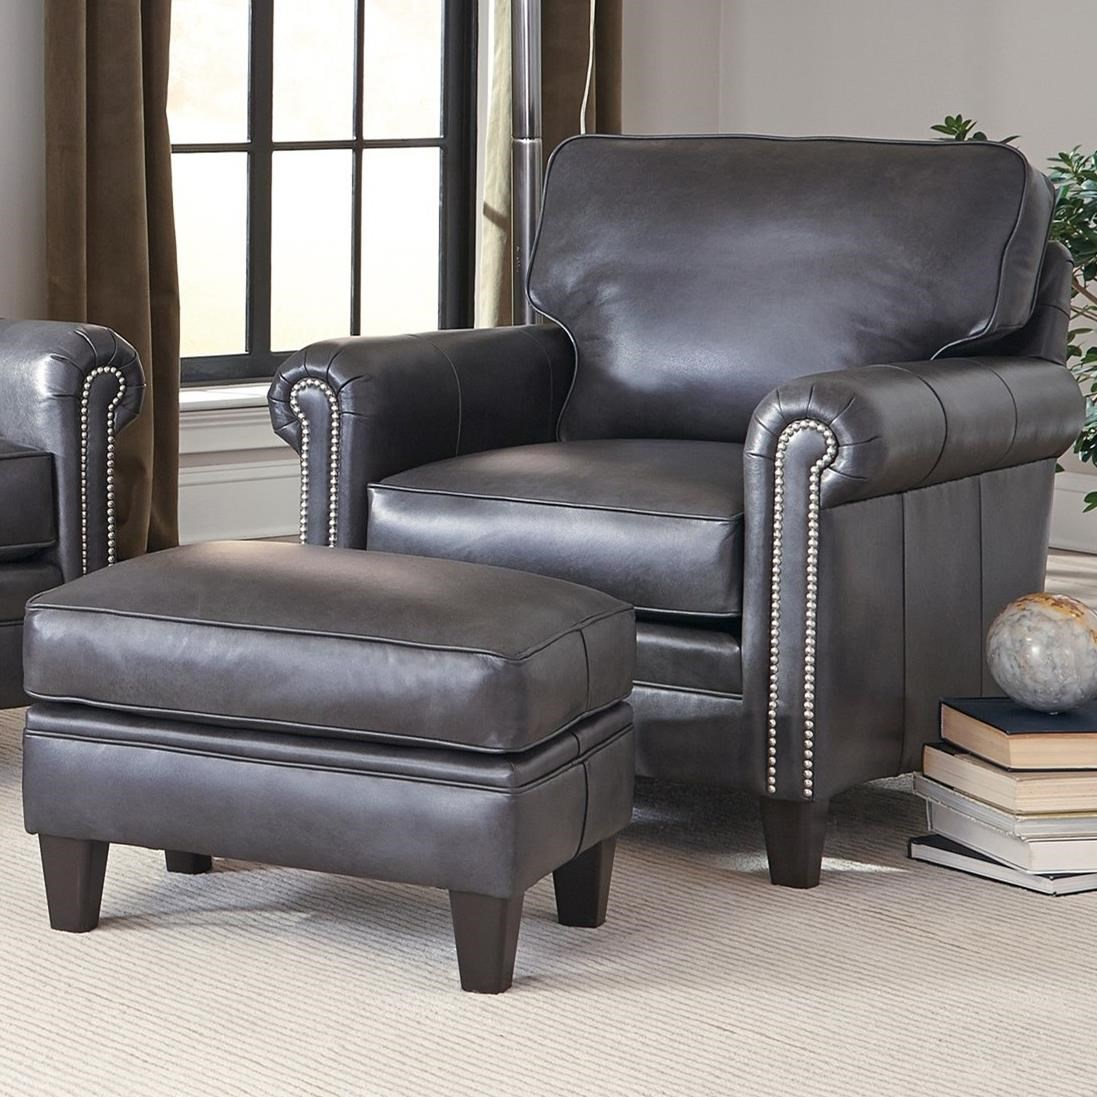 234 Chair and Ottoman Set by Smith Brothers at Sprintz Furniture